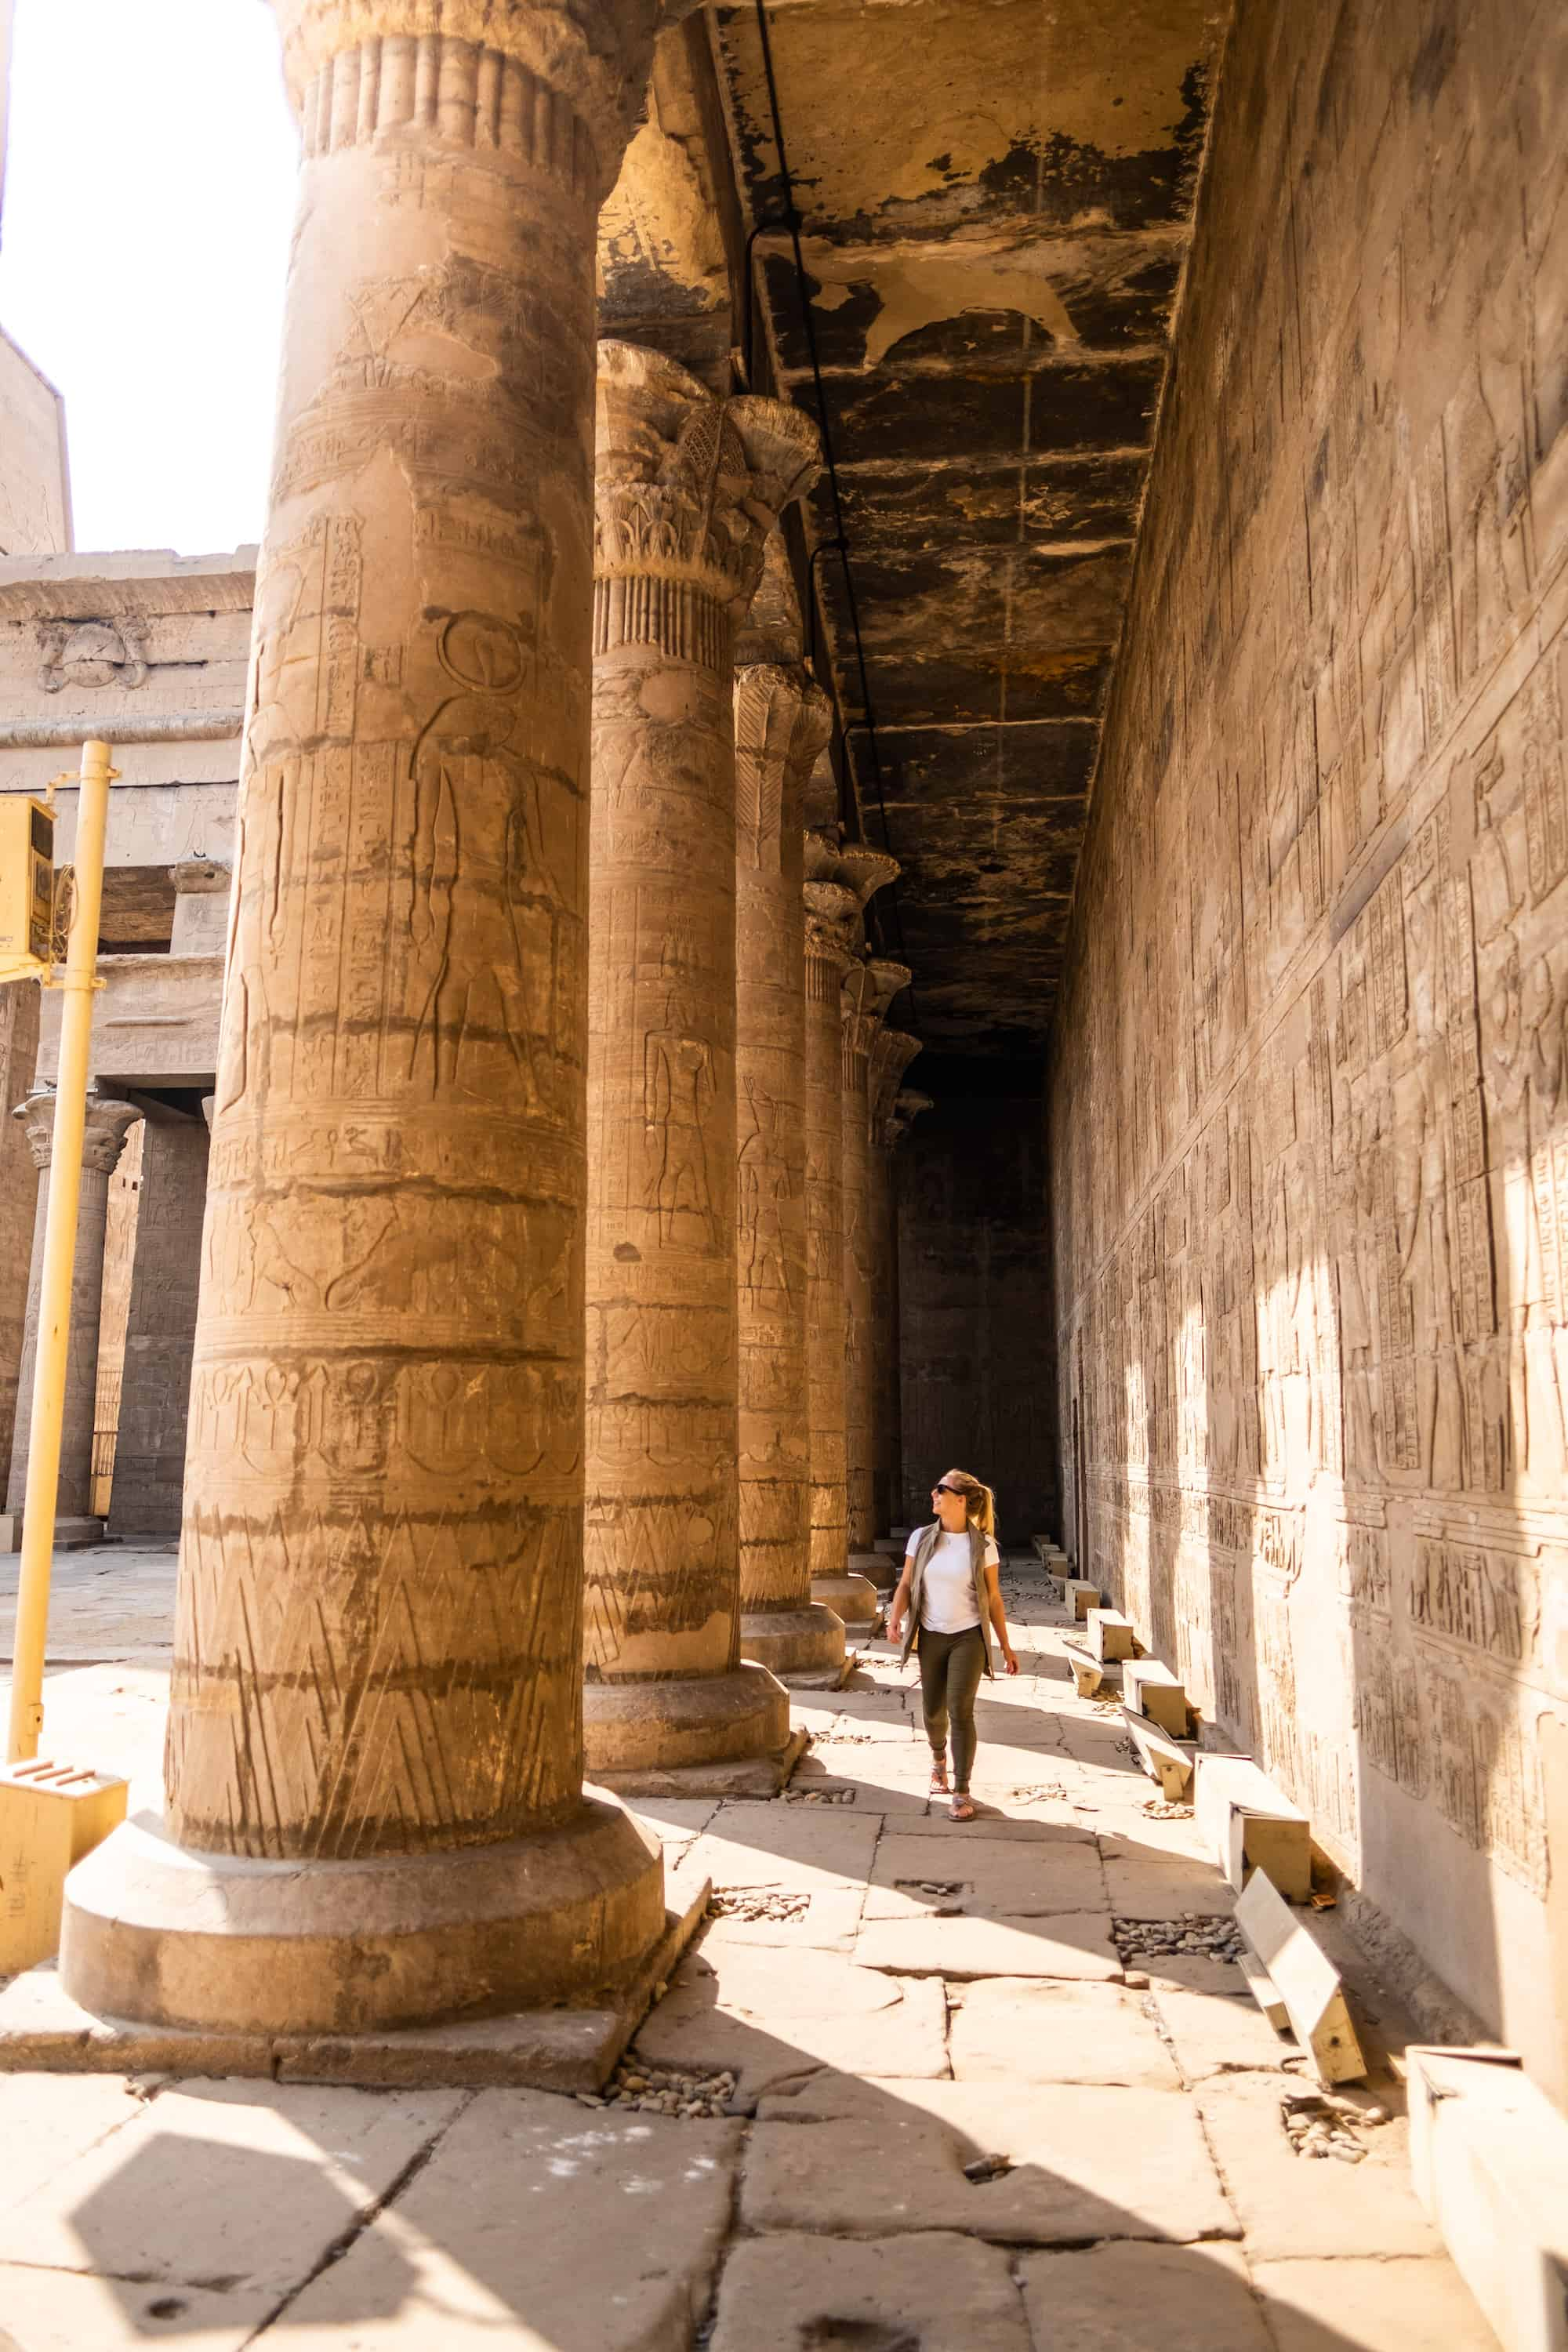 Avoiding the heat in an Egyptian Temple